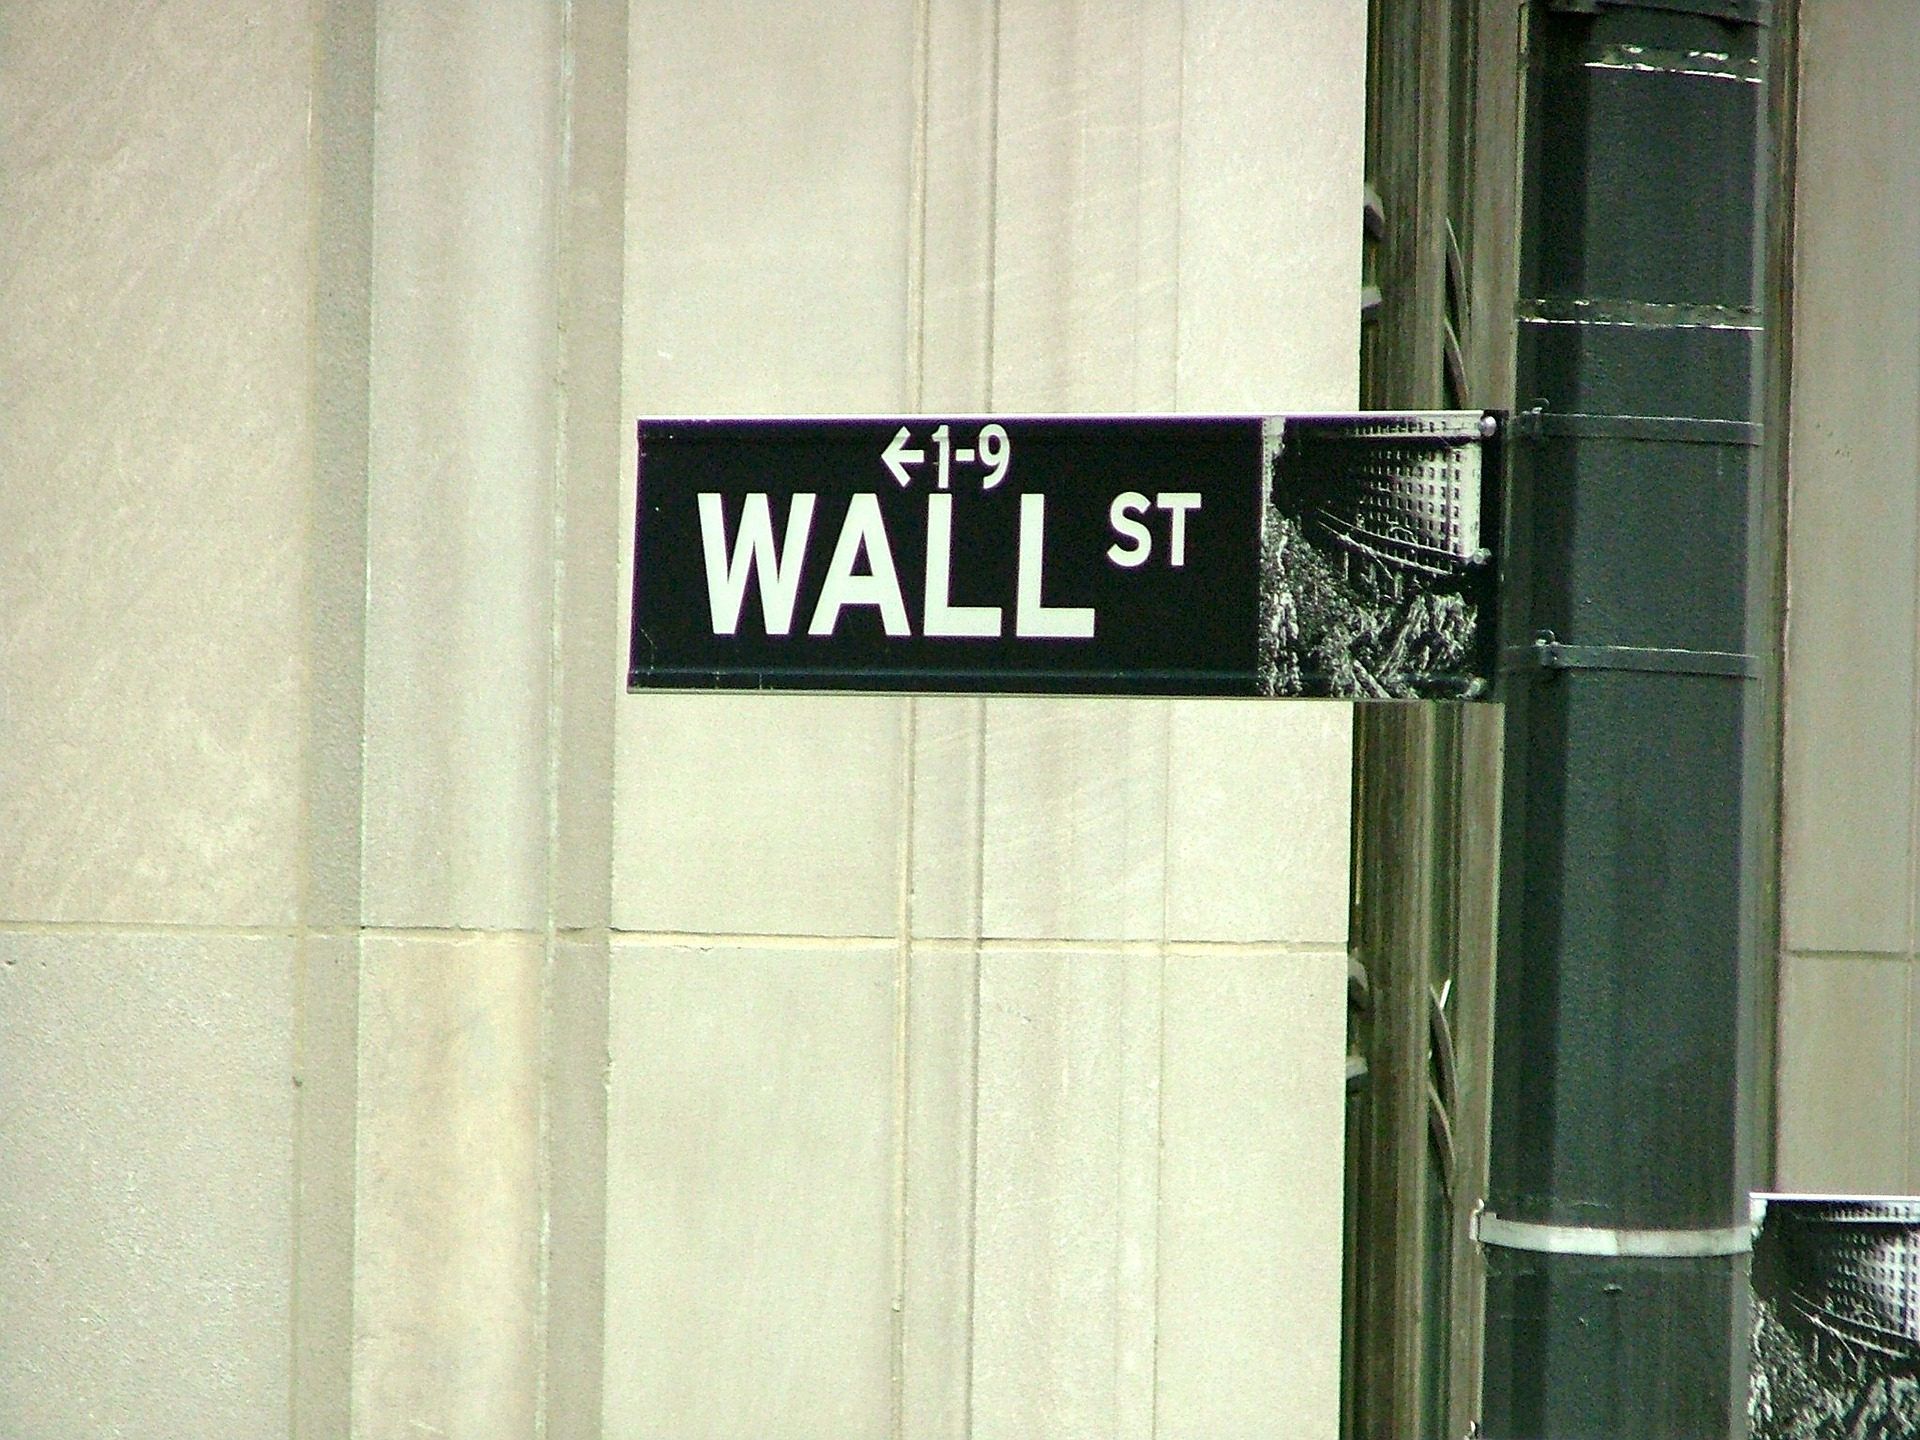 Is Wall Street on pace to see more crypto firms like Kraken go public?